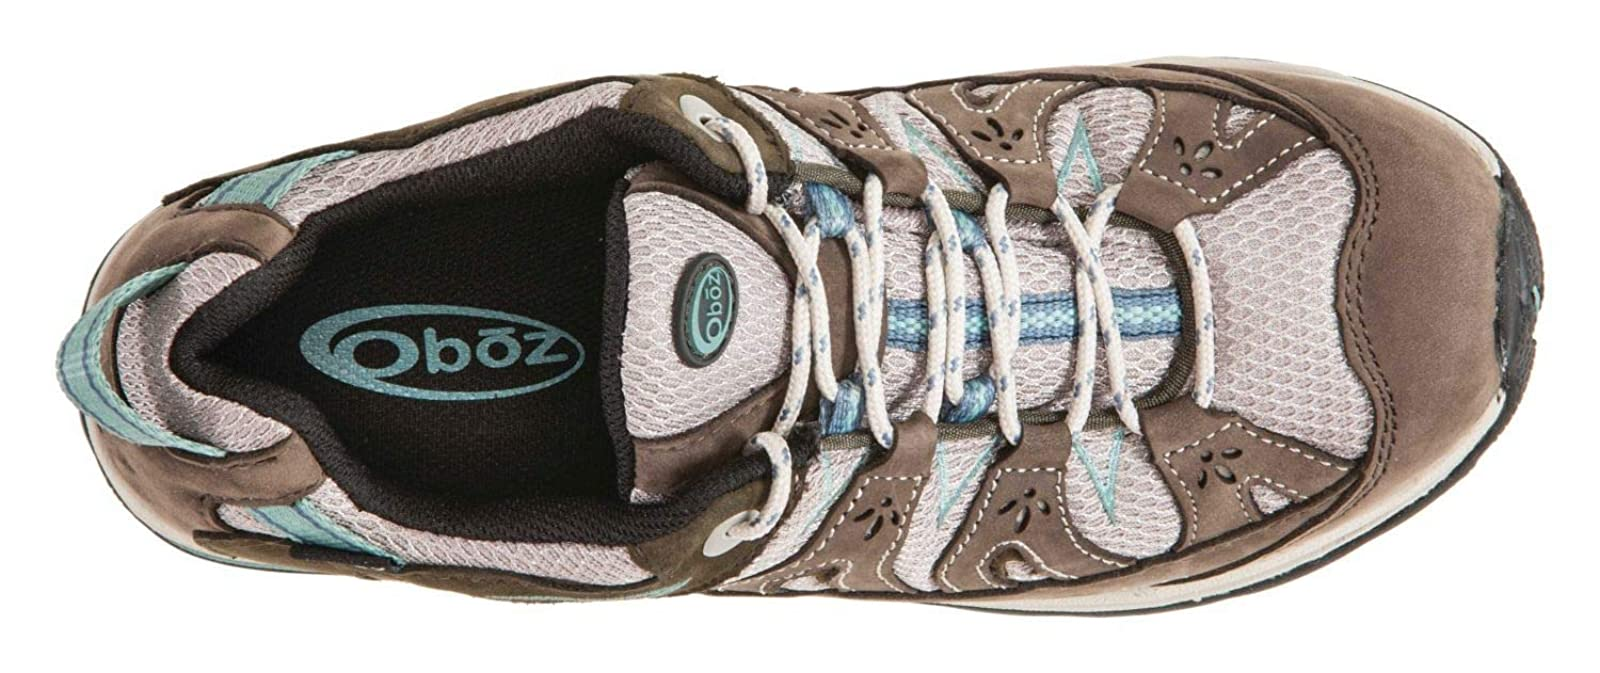 Oboz Women's Mystic Low Bdry Hiking Bluebell 6 M US - 3